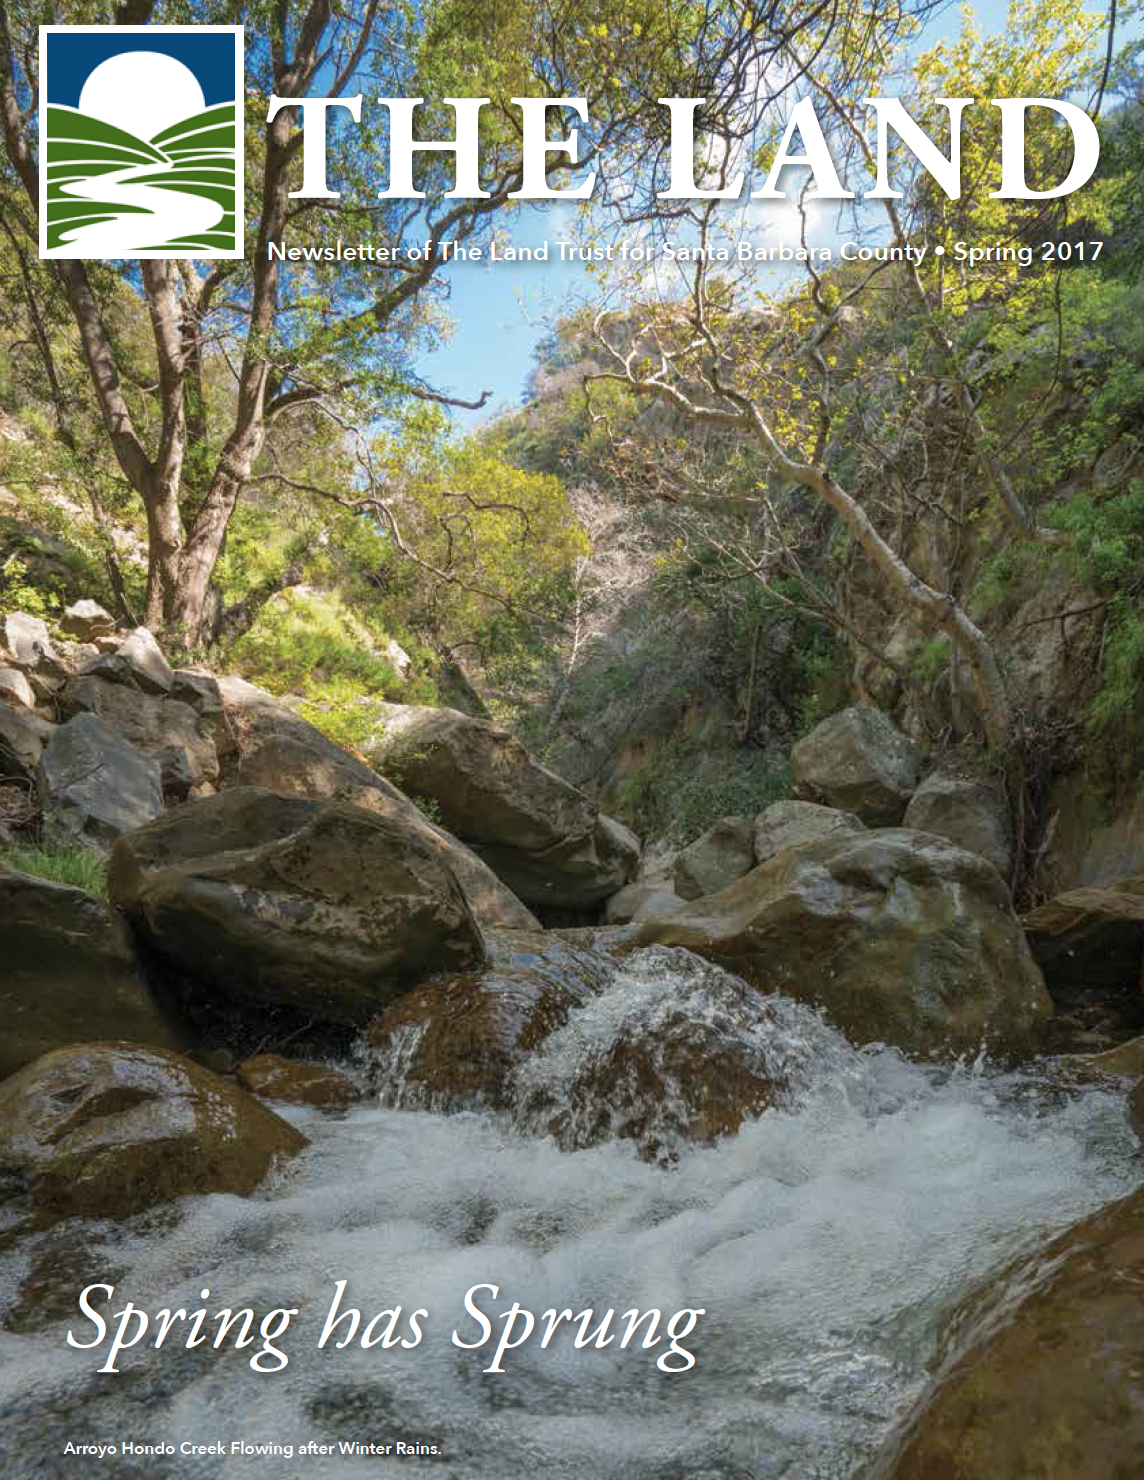 Land Trust Newsletter Spring 2017